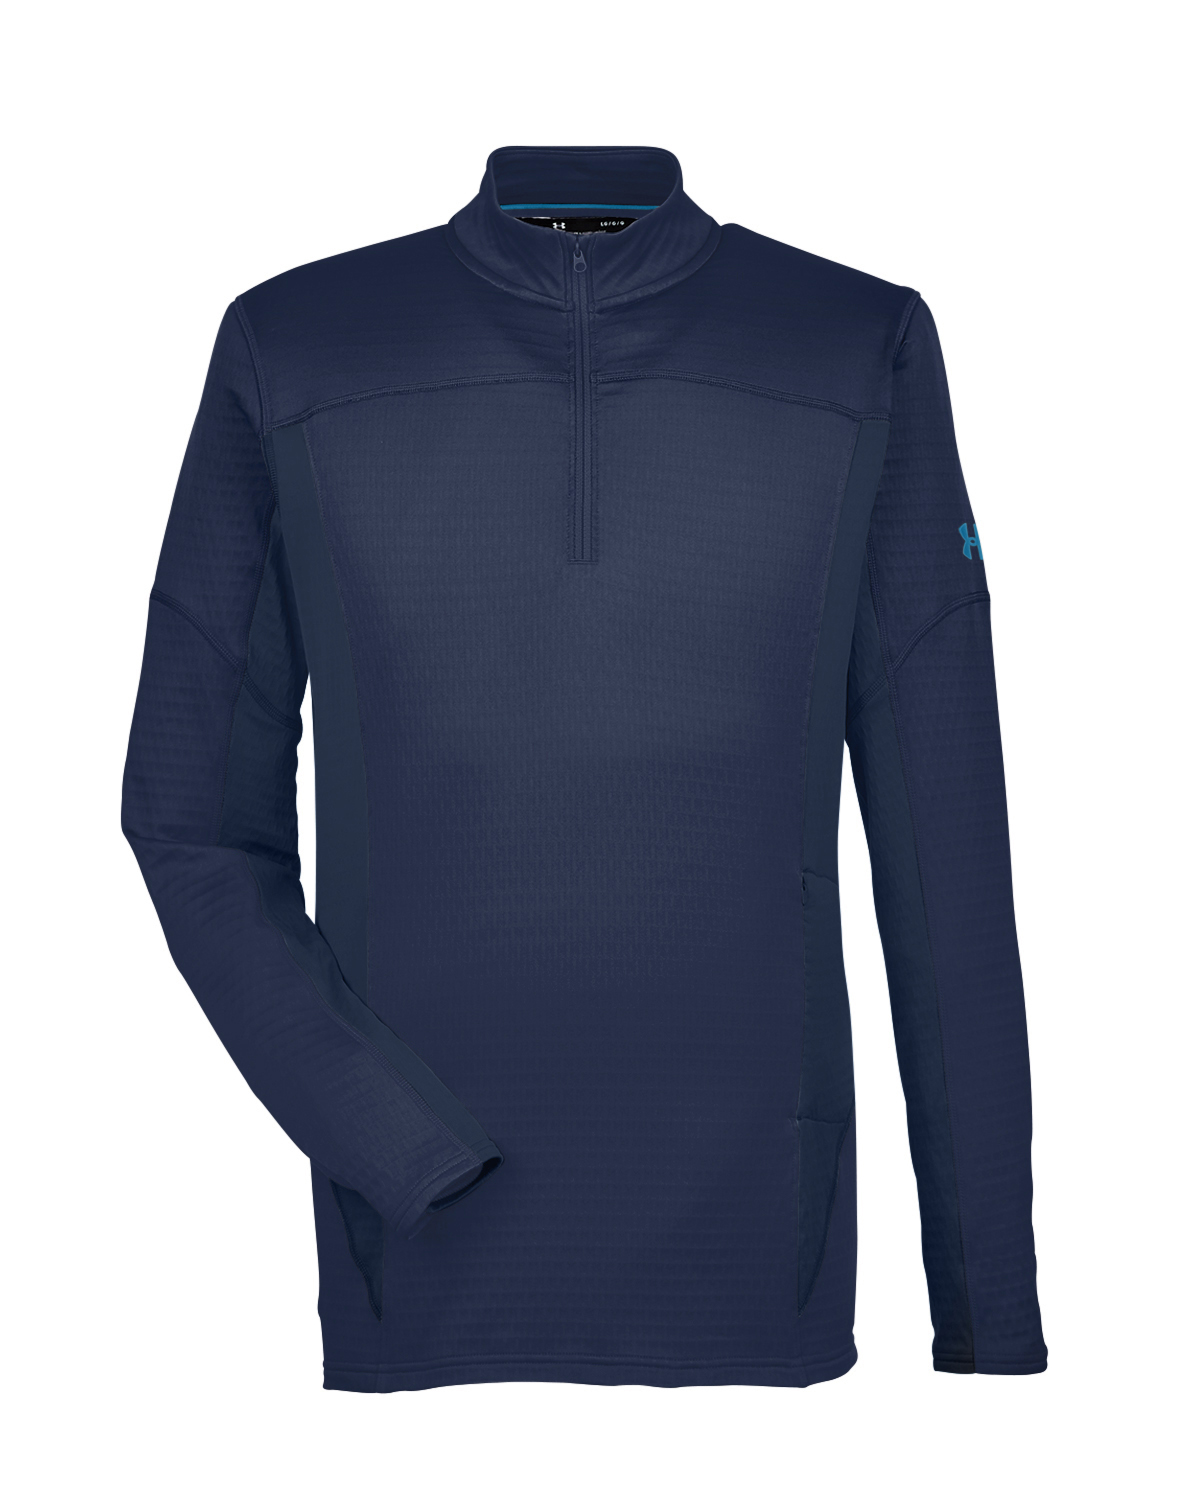 Under Armour 1316277 - Men's Spectra Quarter Zip Pullover